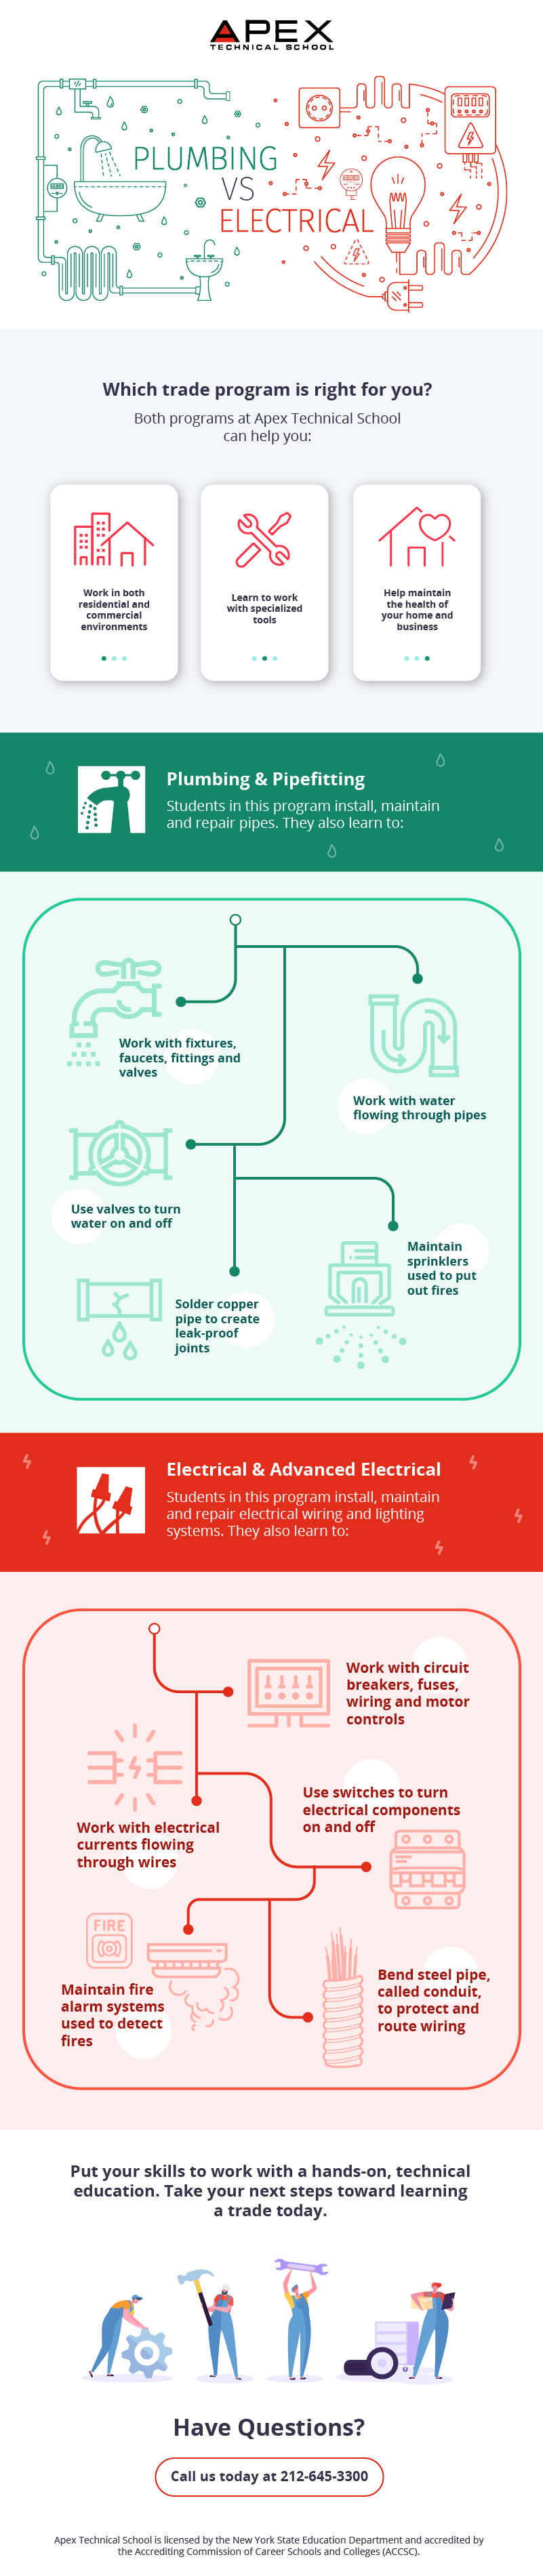 Plumbing and pipefitting versus electrical trade program infographic